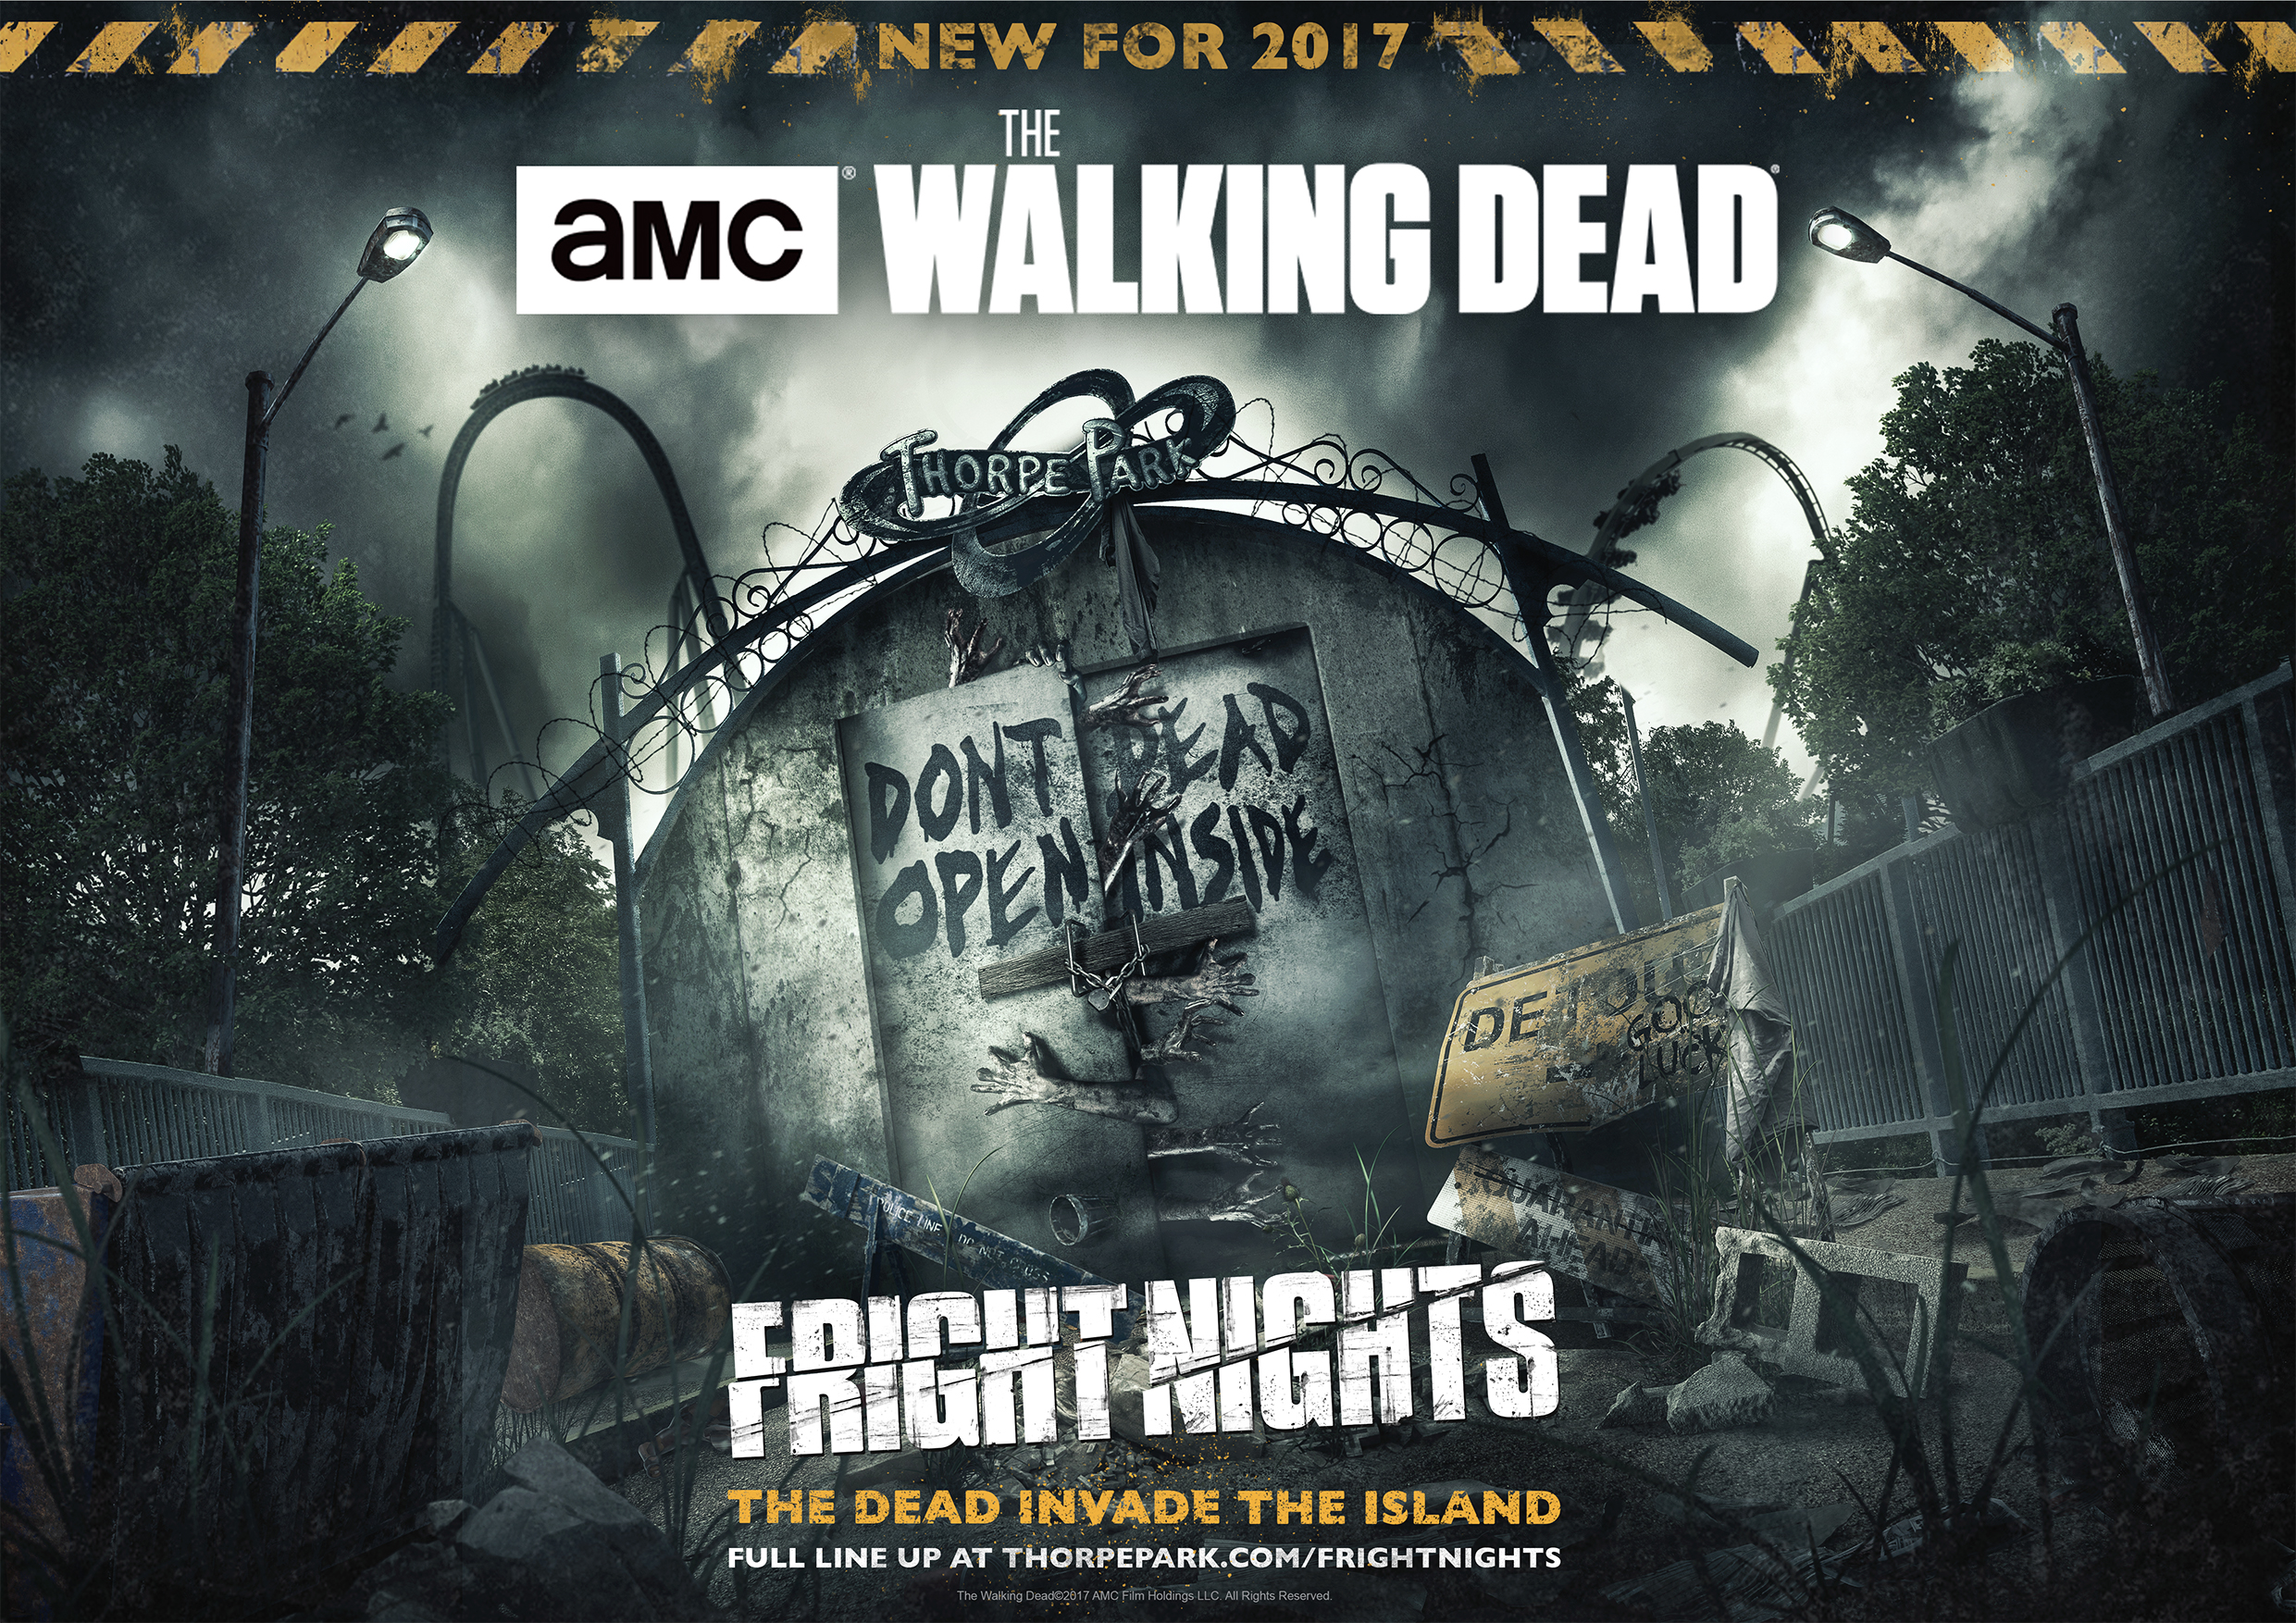 The Walking Dead at Thorpe Park Fright Nights